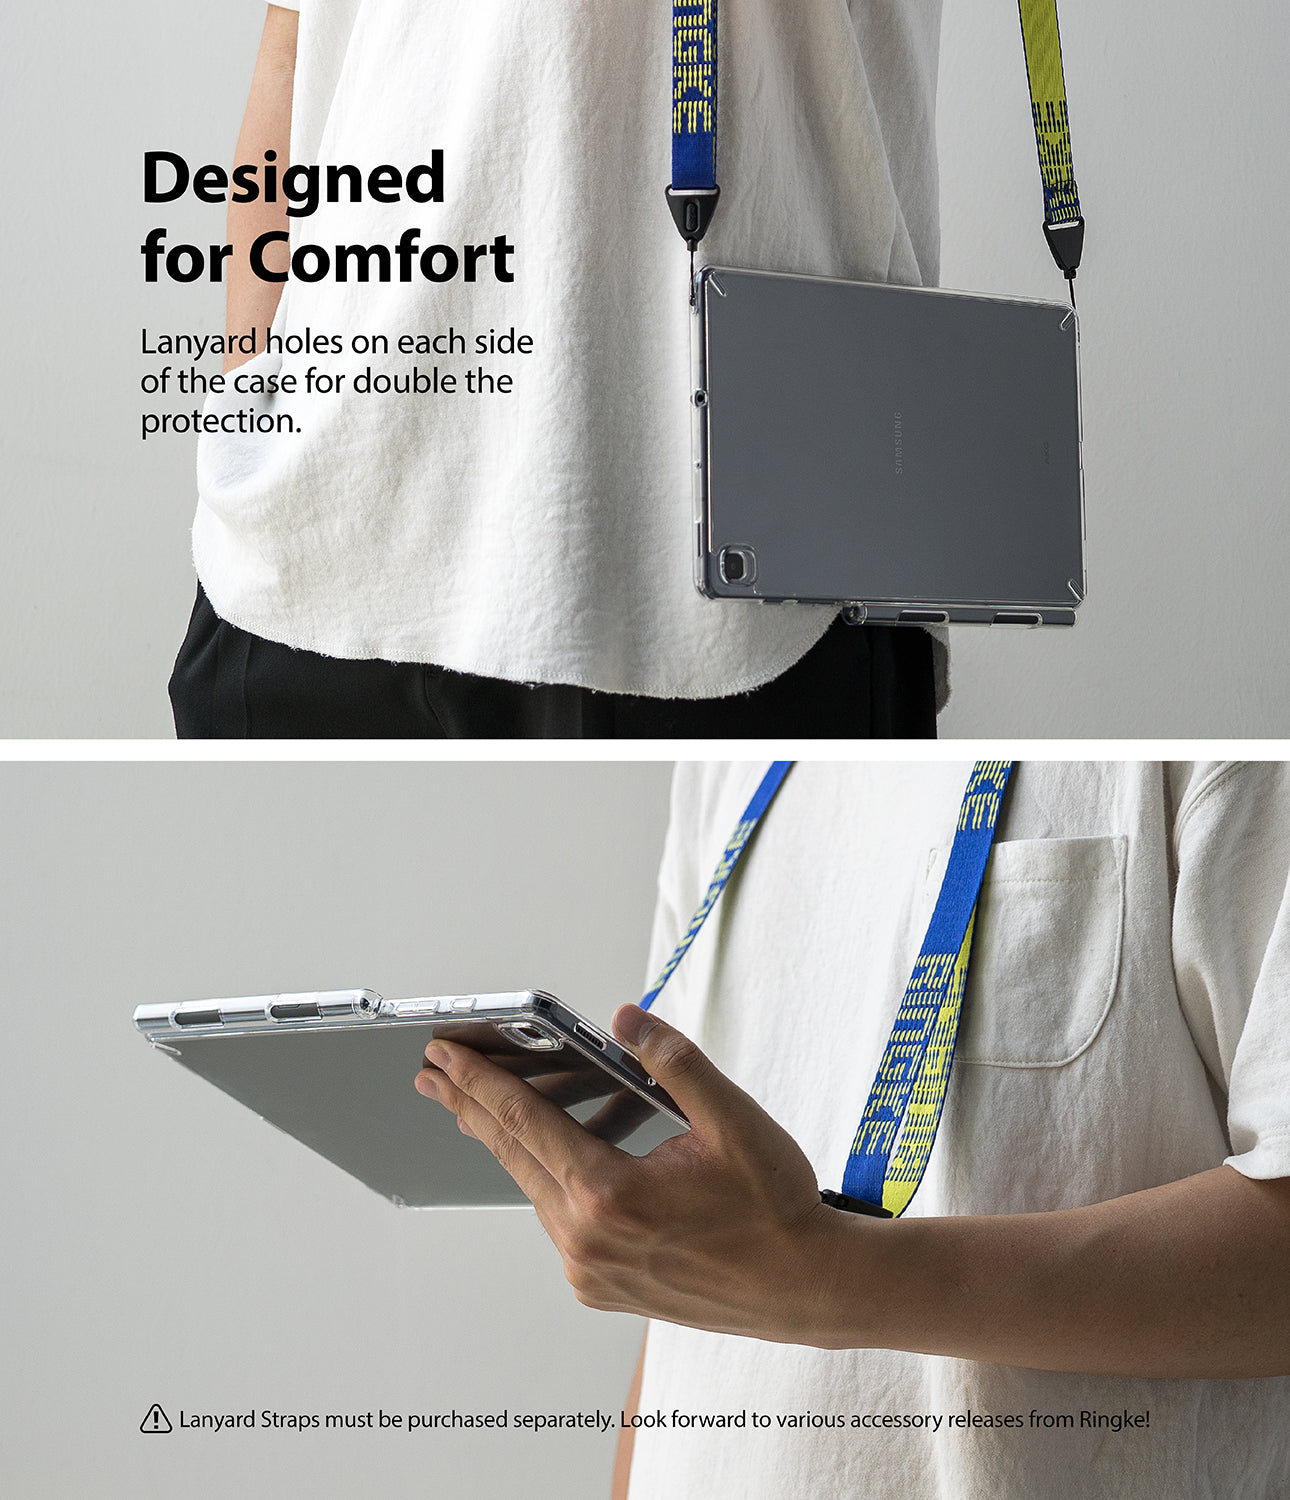 designed for comfort - lanyard holes on each side of the case for double the protection